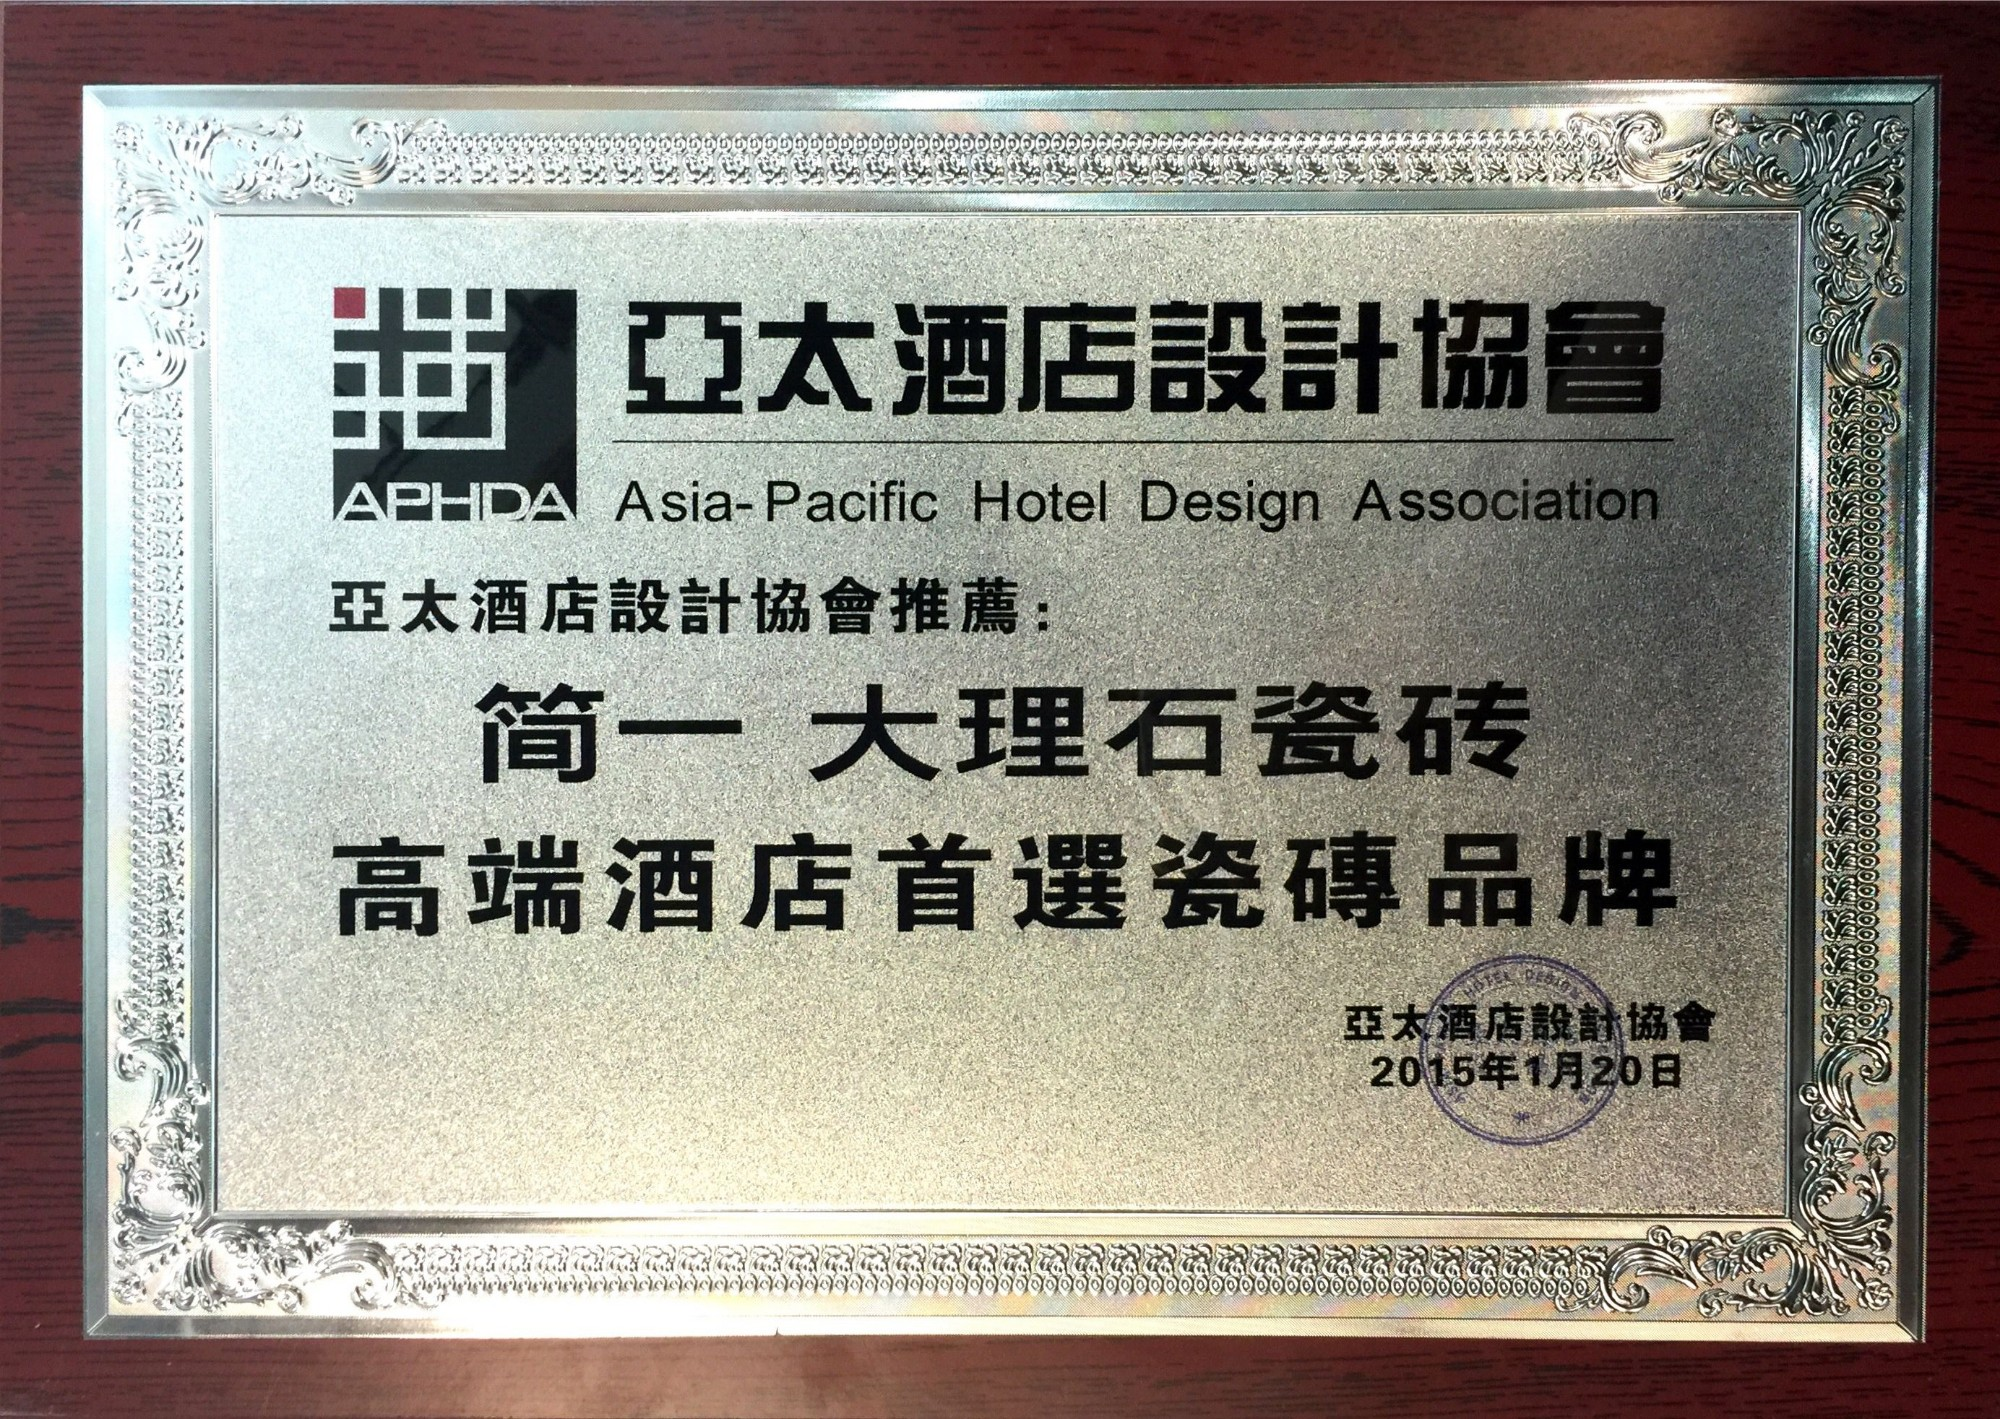 Preferred Brand for Luxury Hotels Awarded by Asia-pacific Hotel Design Association